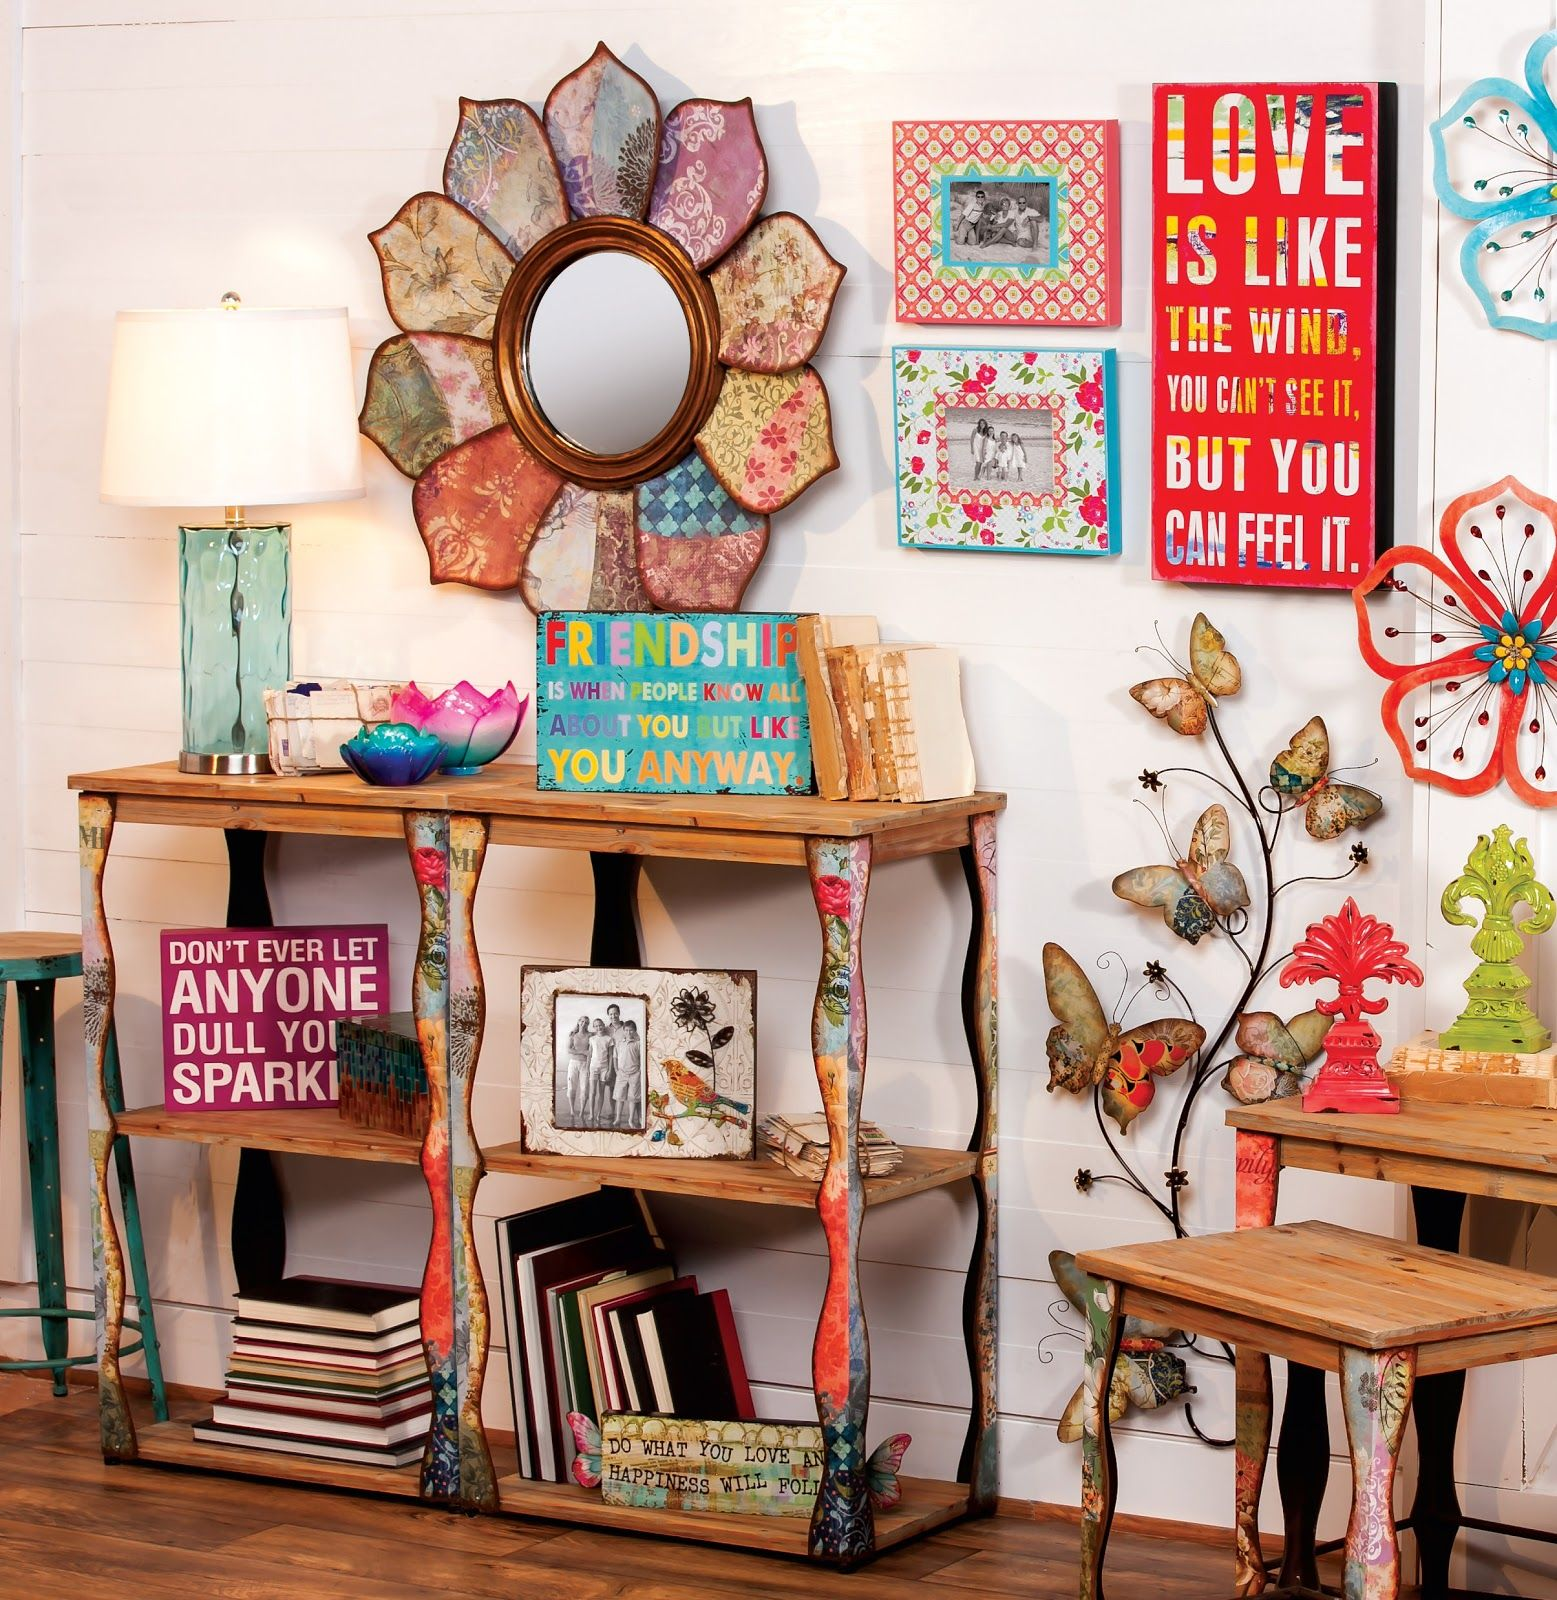 bohemian chic furniture 1000 images about bohemian on pinterest poufs bohemian pillows and decorative screens ashley bedroom furniture latest design welfurnitures